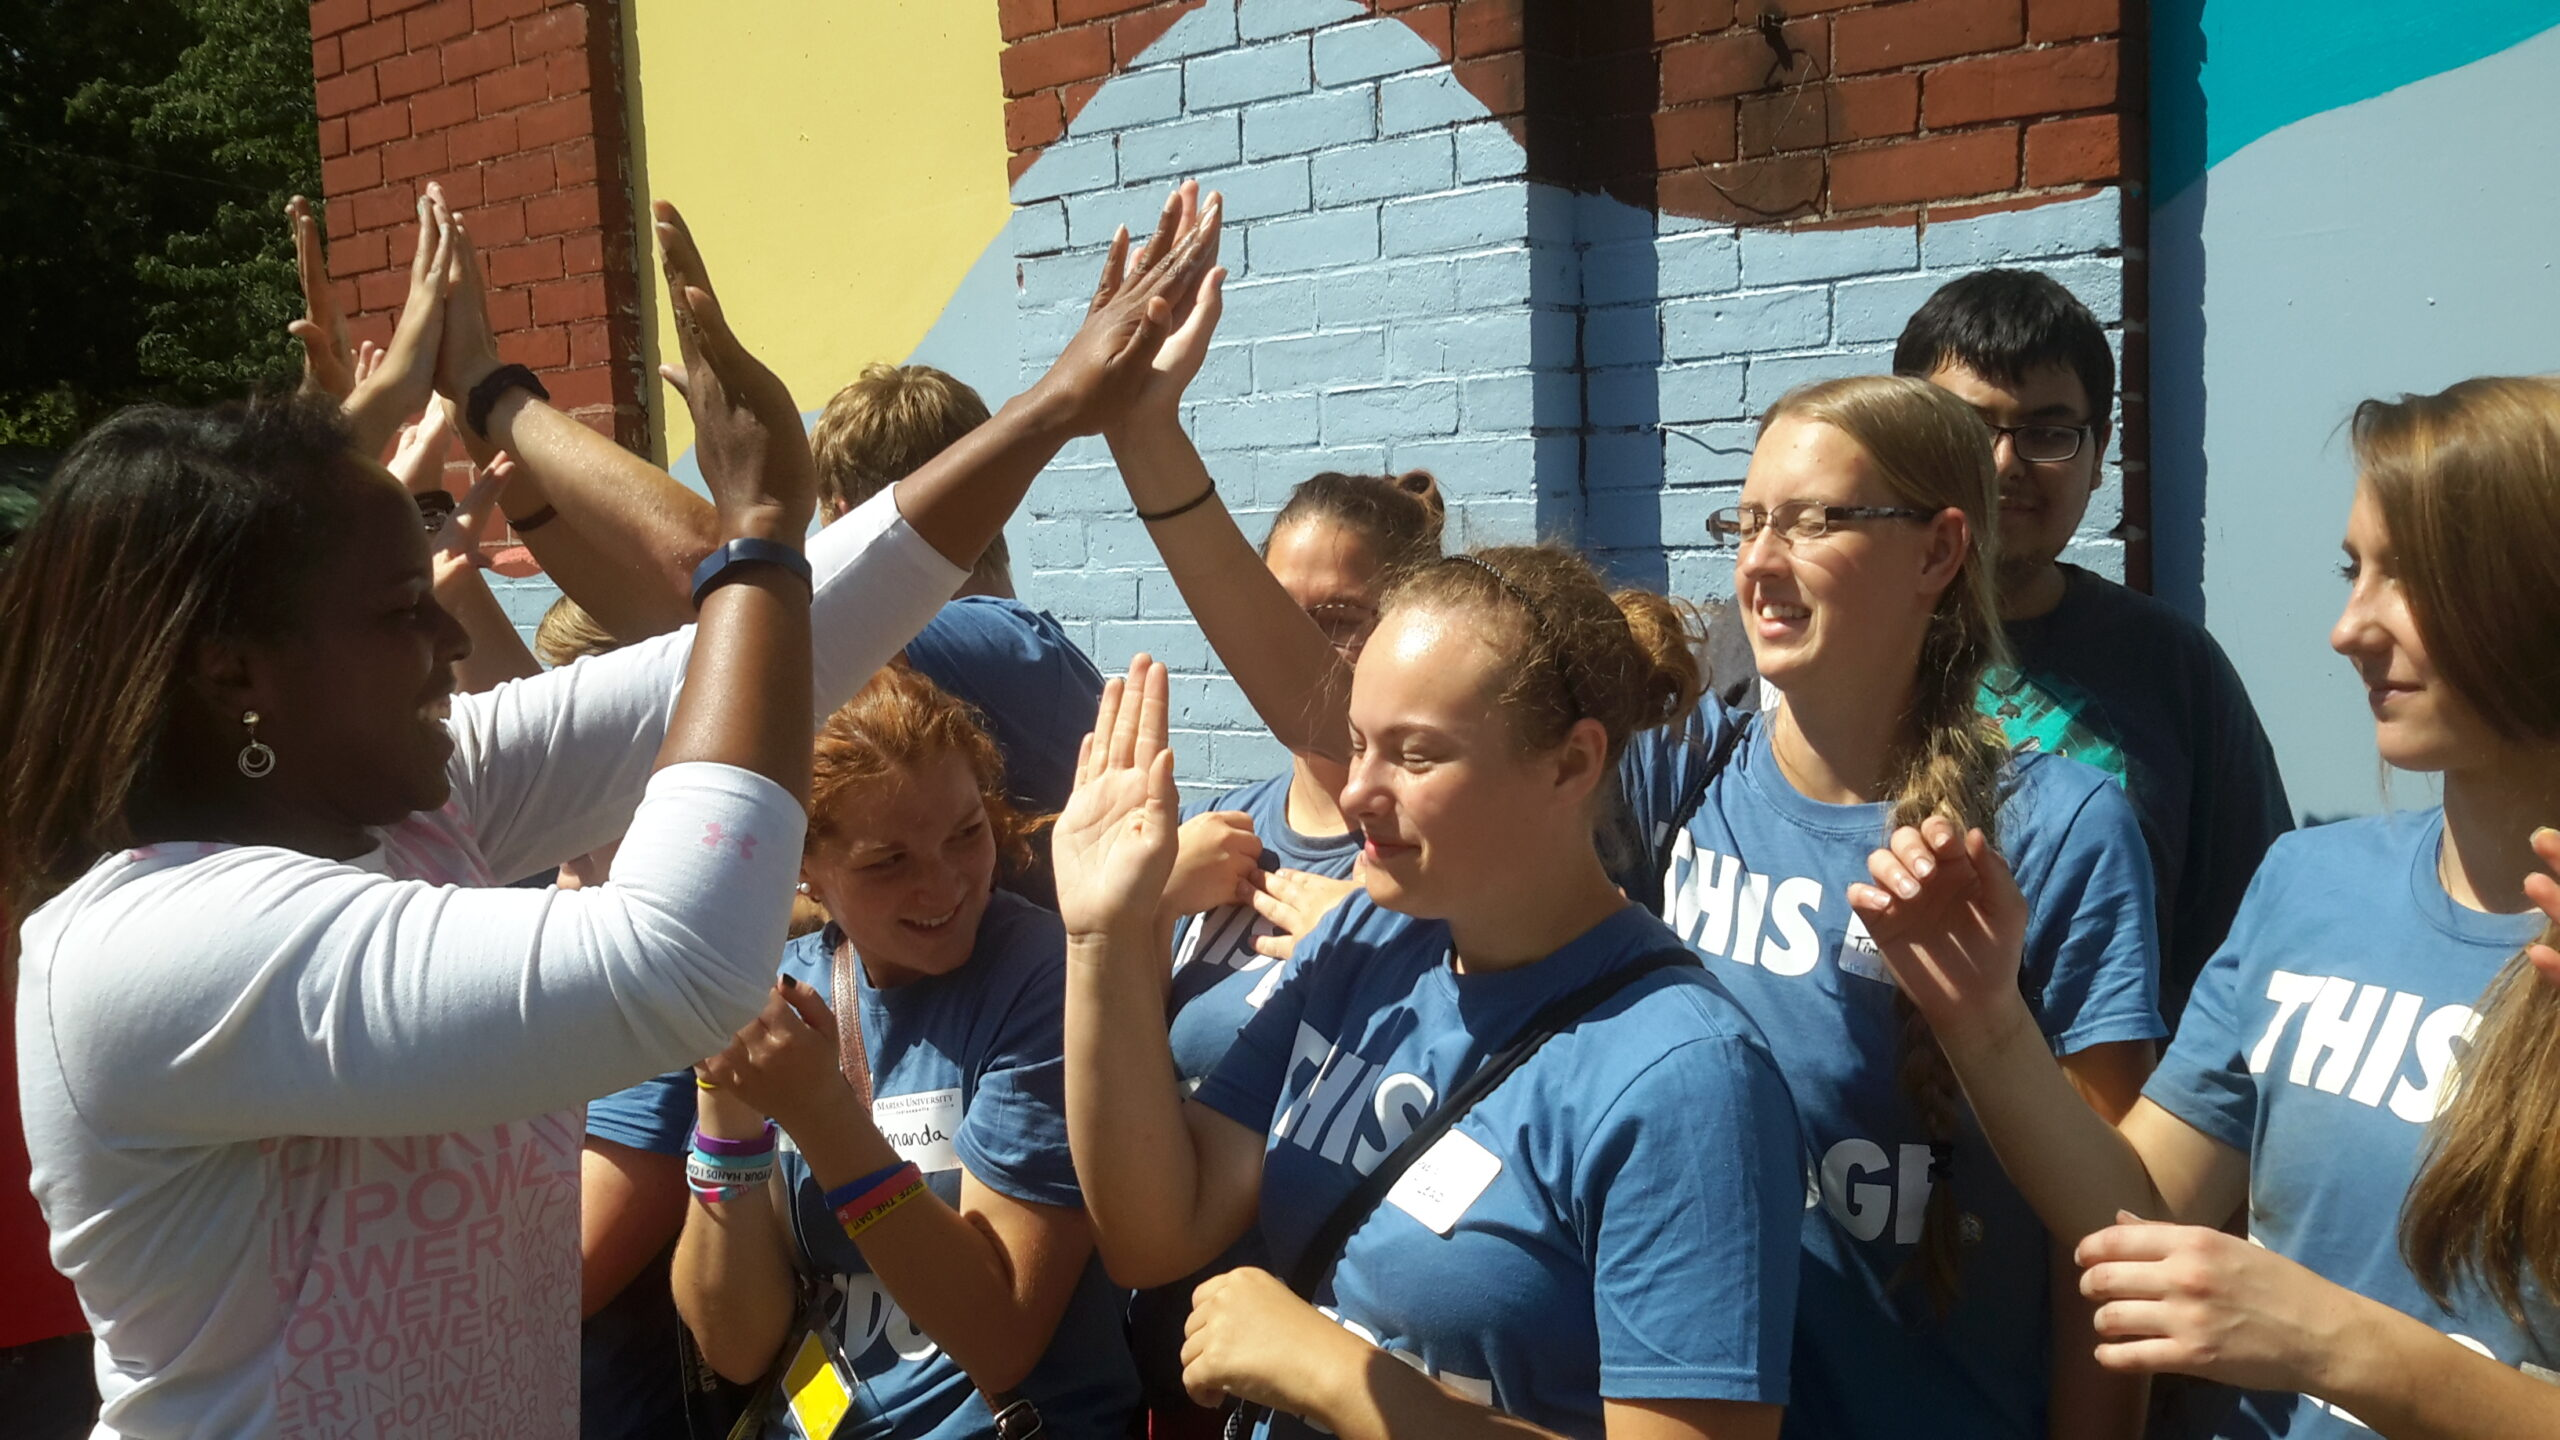 2e.Marian Students High Five 2